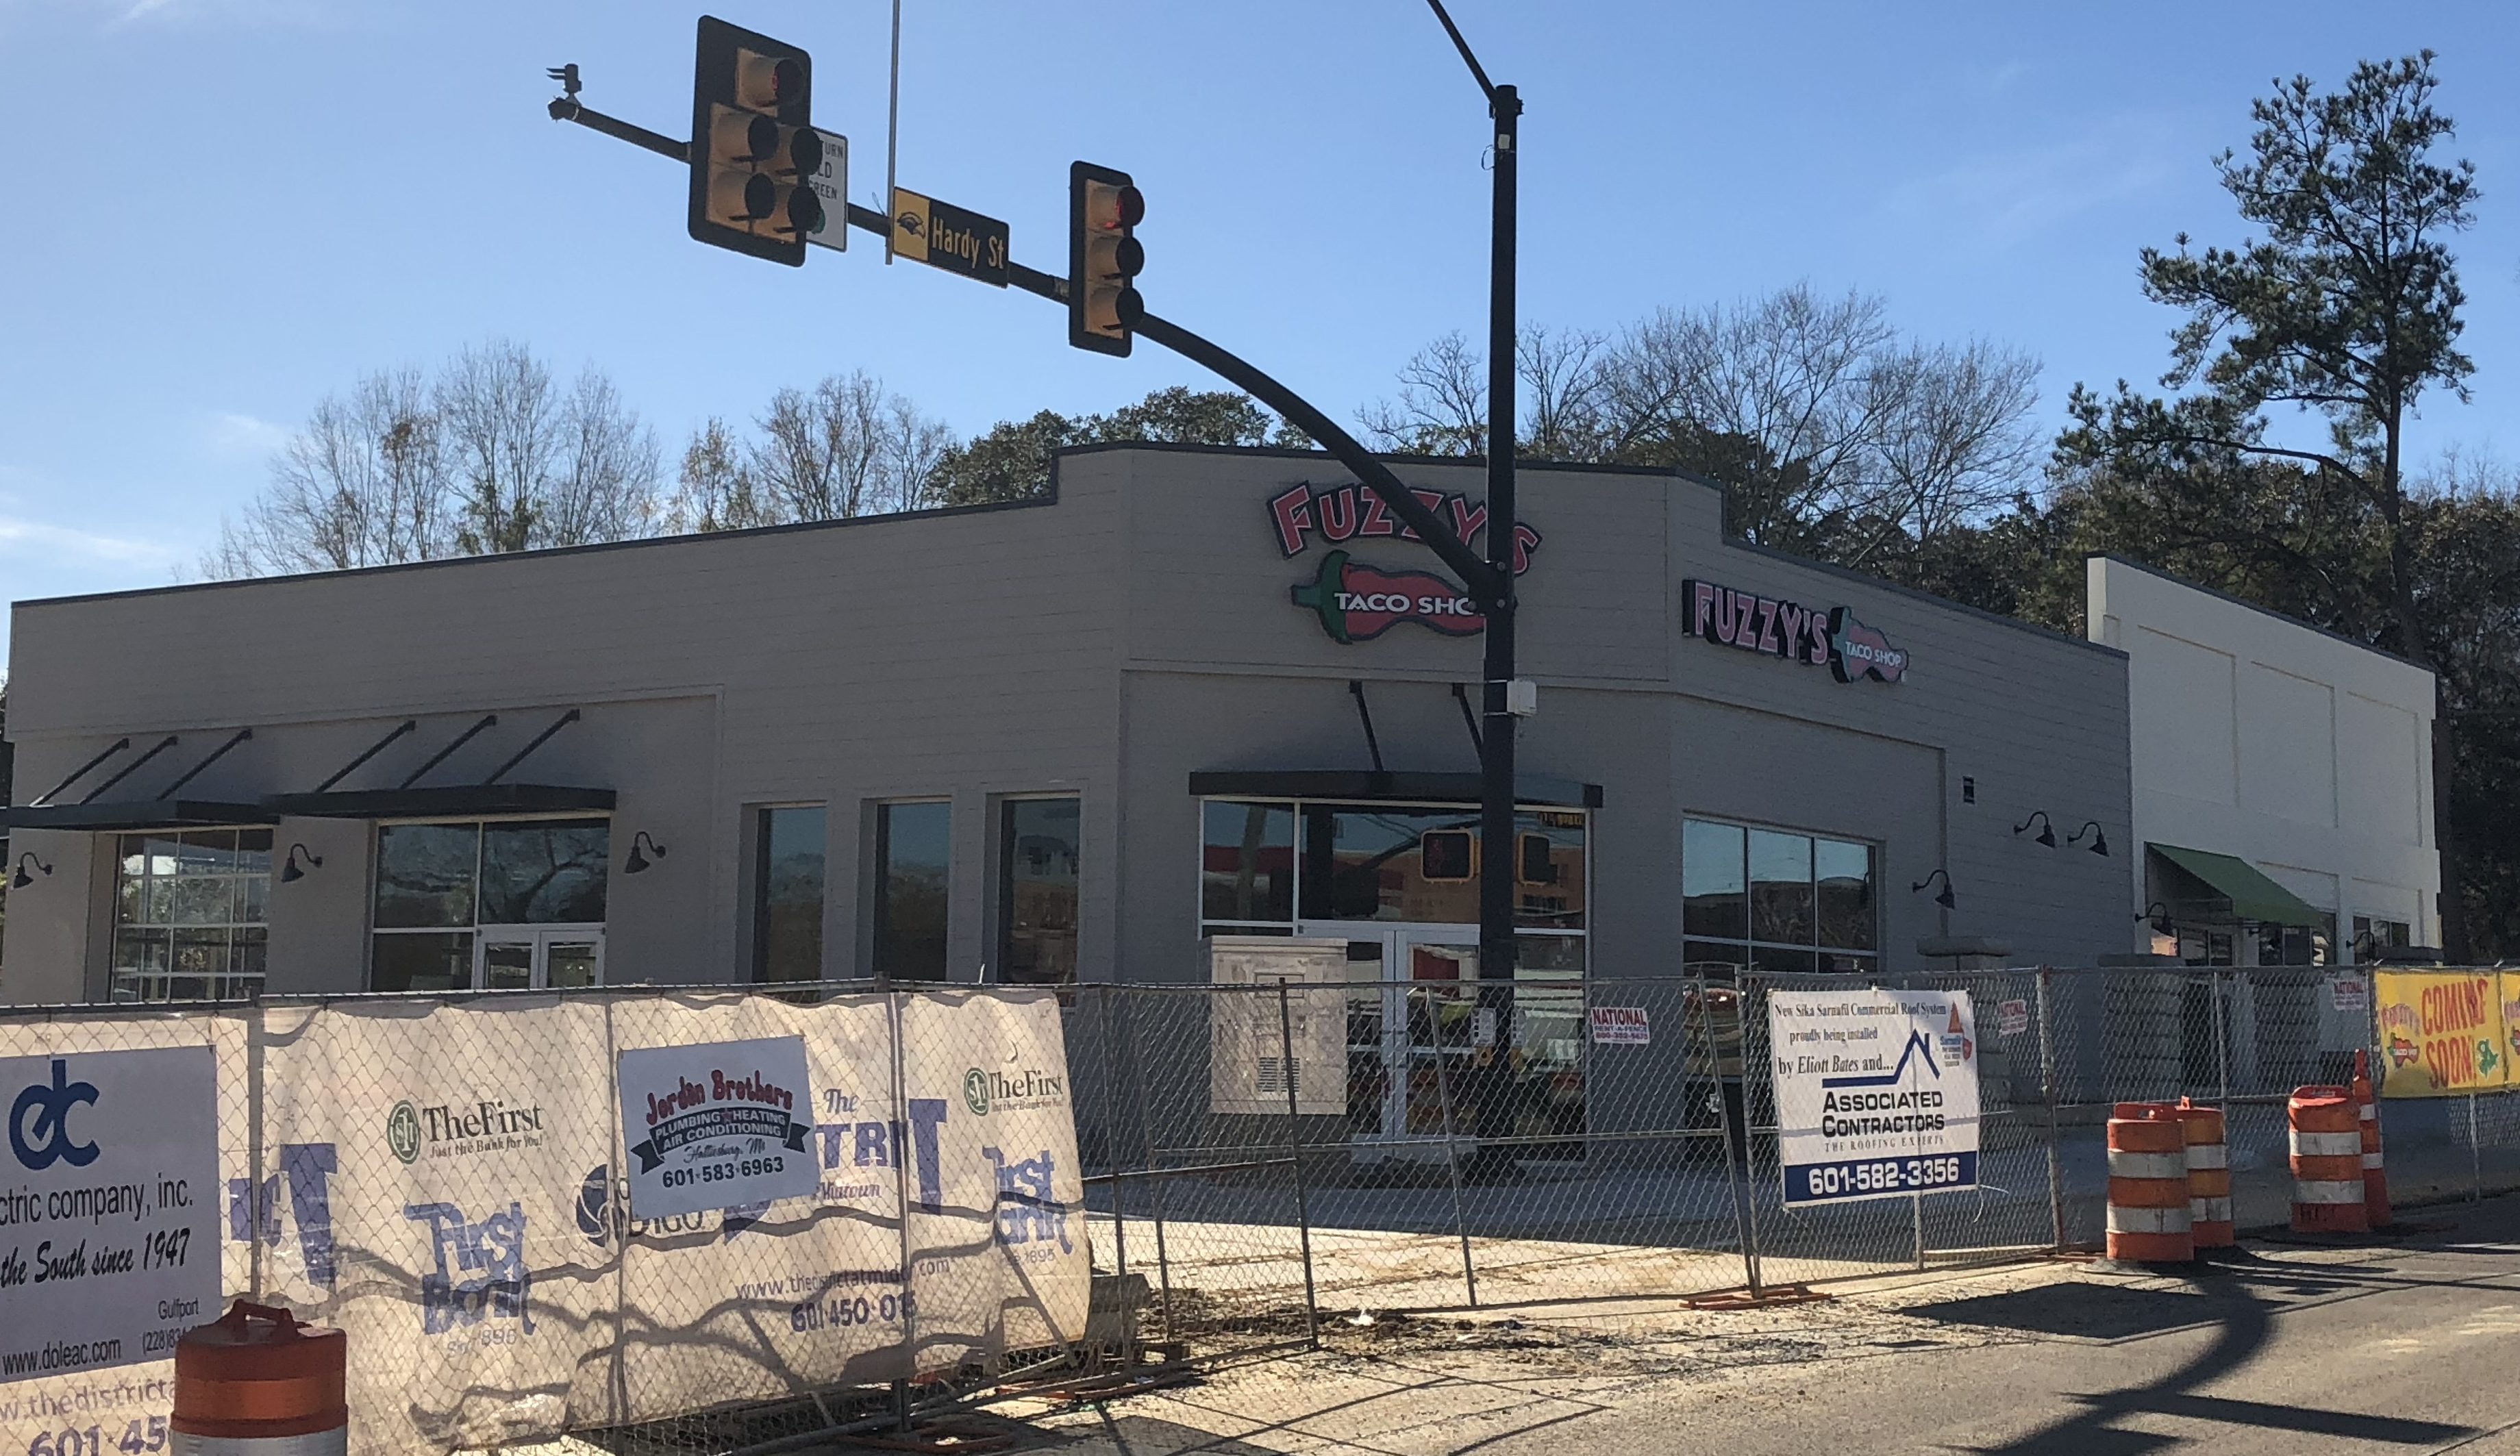 District at Midtown set to open in early 2018